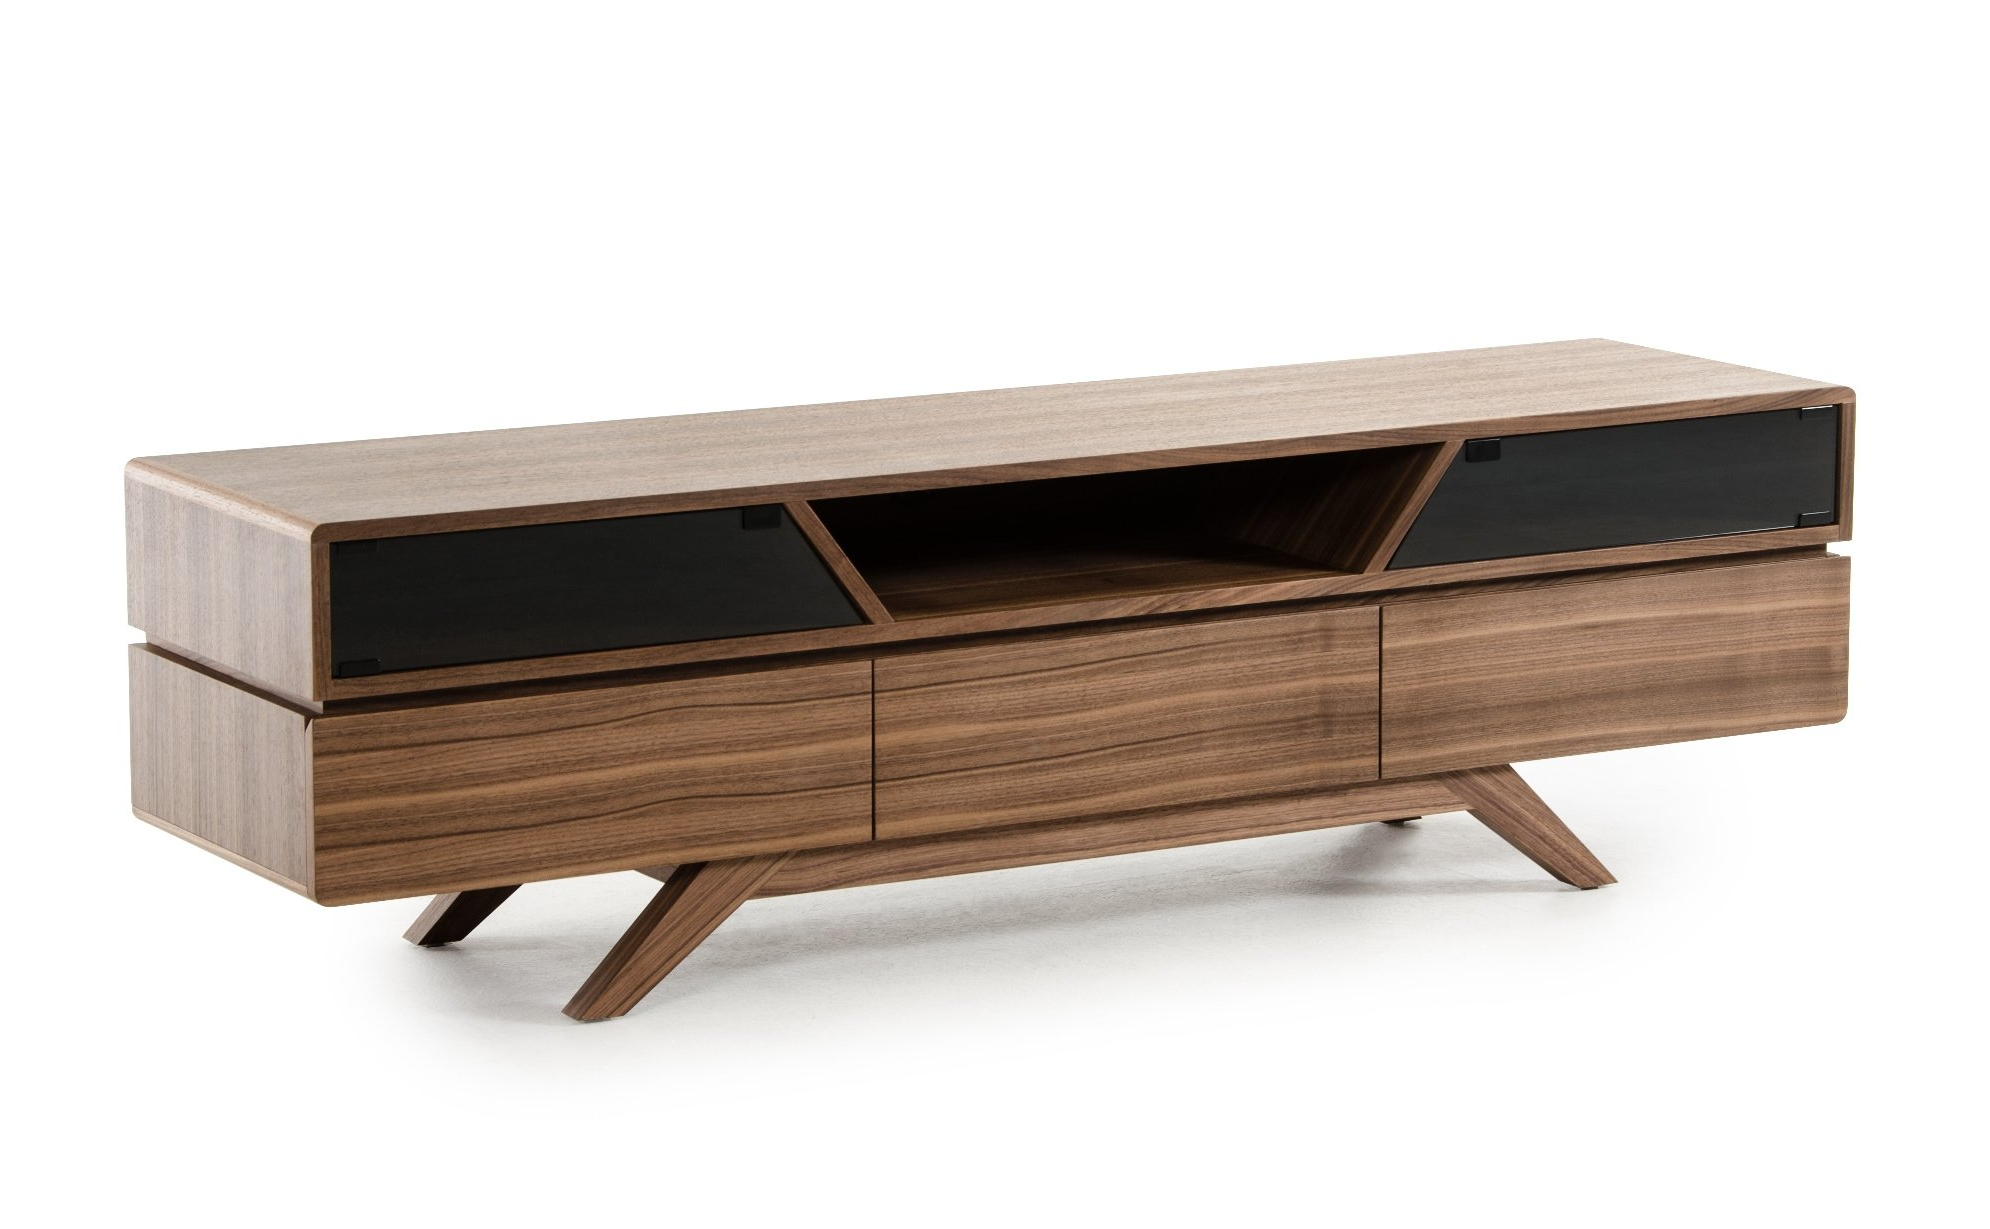 60 69 Inch Tv Stands You'll Love (Gallery 6 of 20)